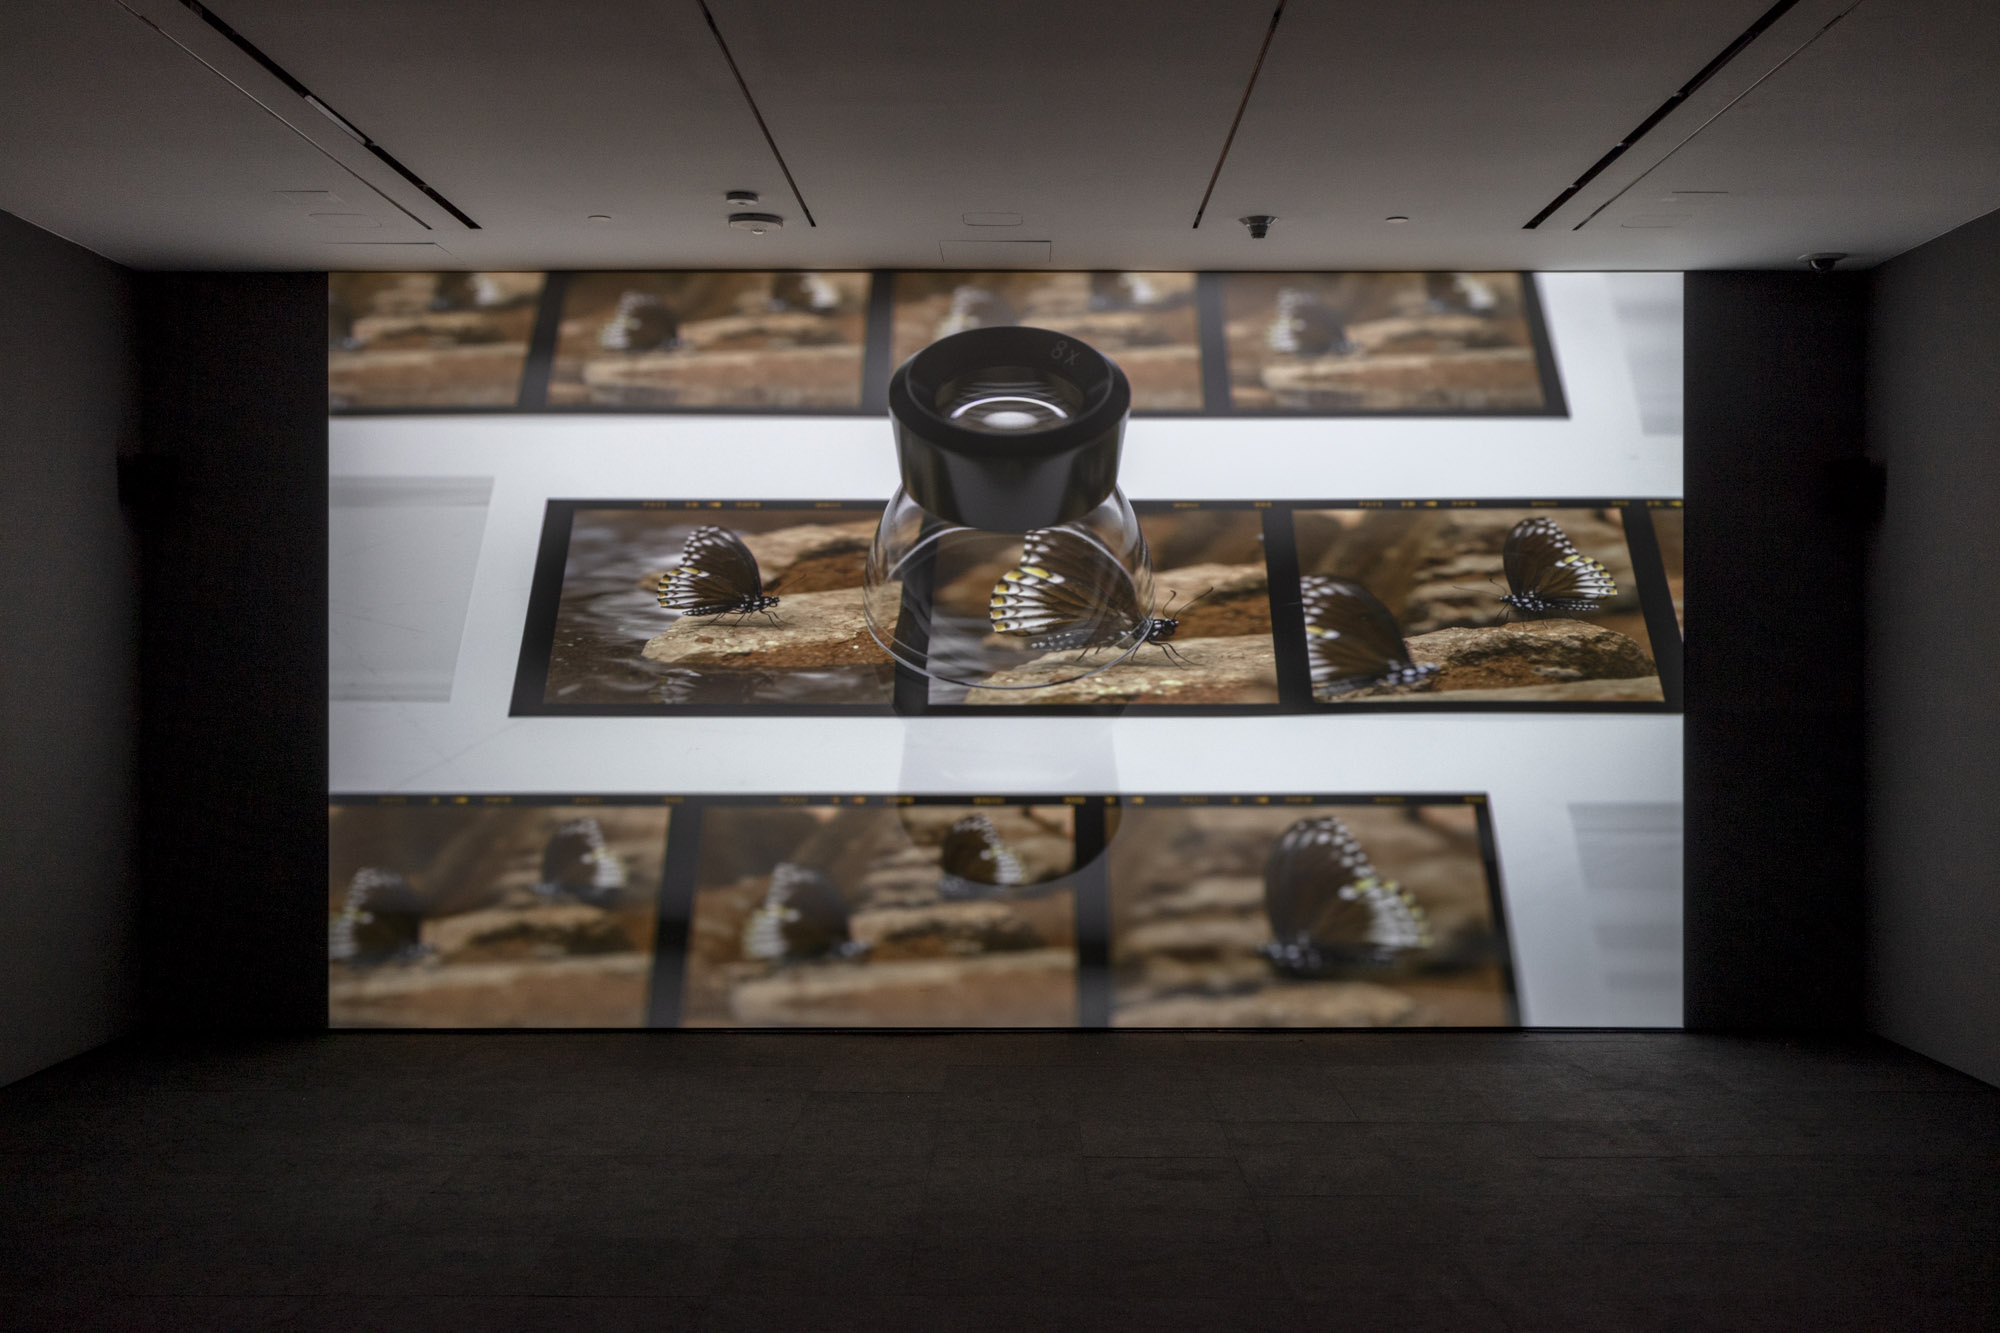 """An installation view of Jeffrey Stuker's work at """"Made in L.A. 2020: a version."""" at Hammer Museum, Los Angeles. 